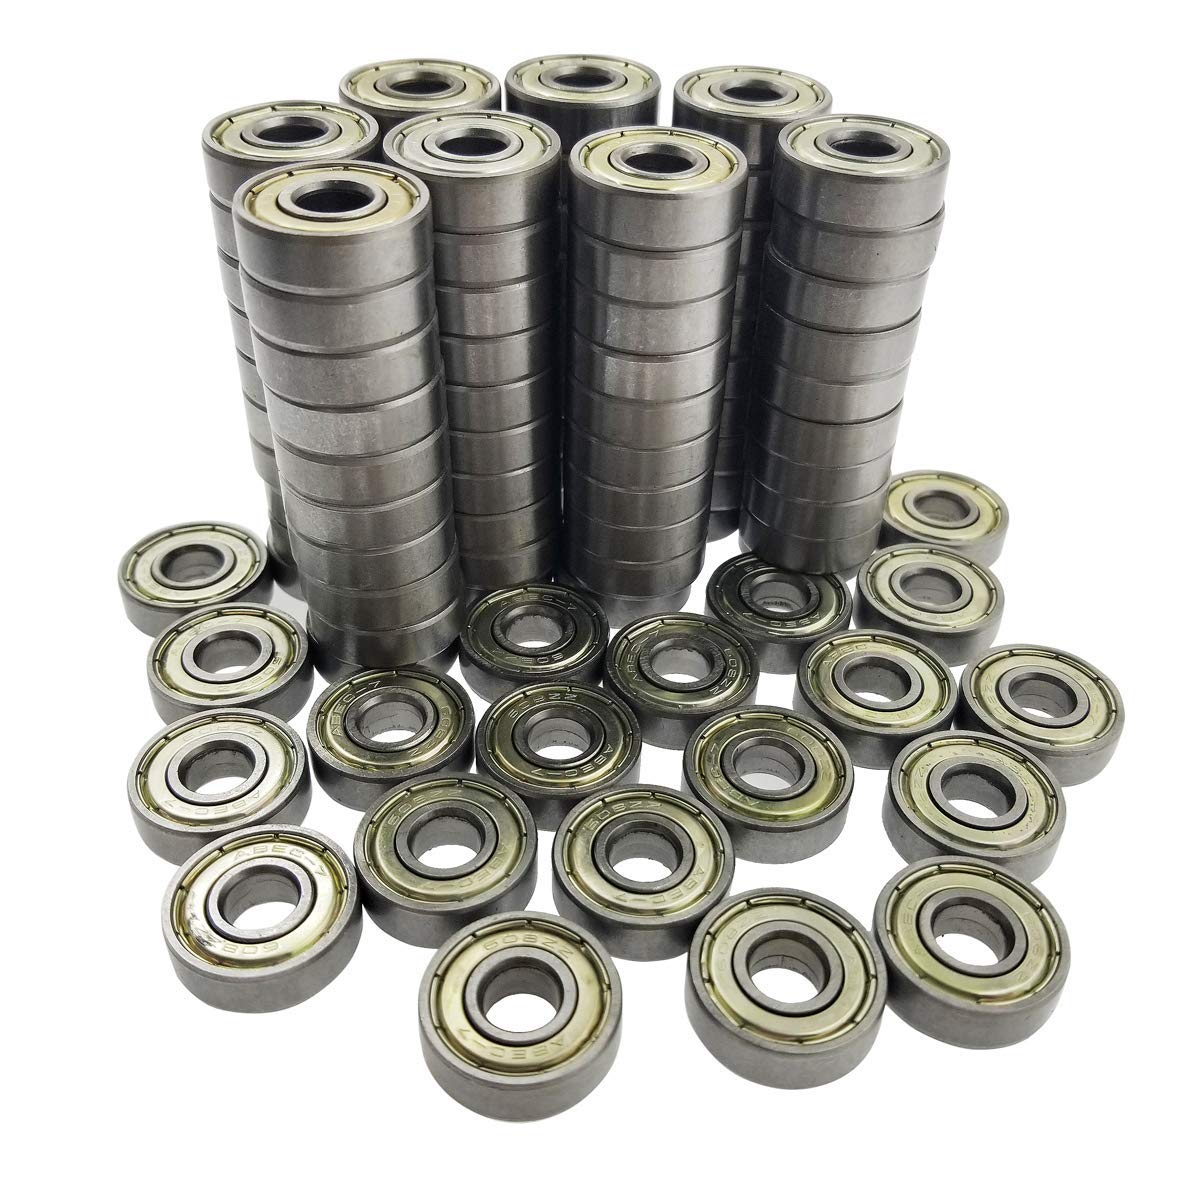 ZooTek 100 PCS 608 ZZ Skateboard Bearings